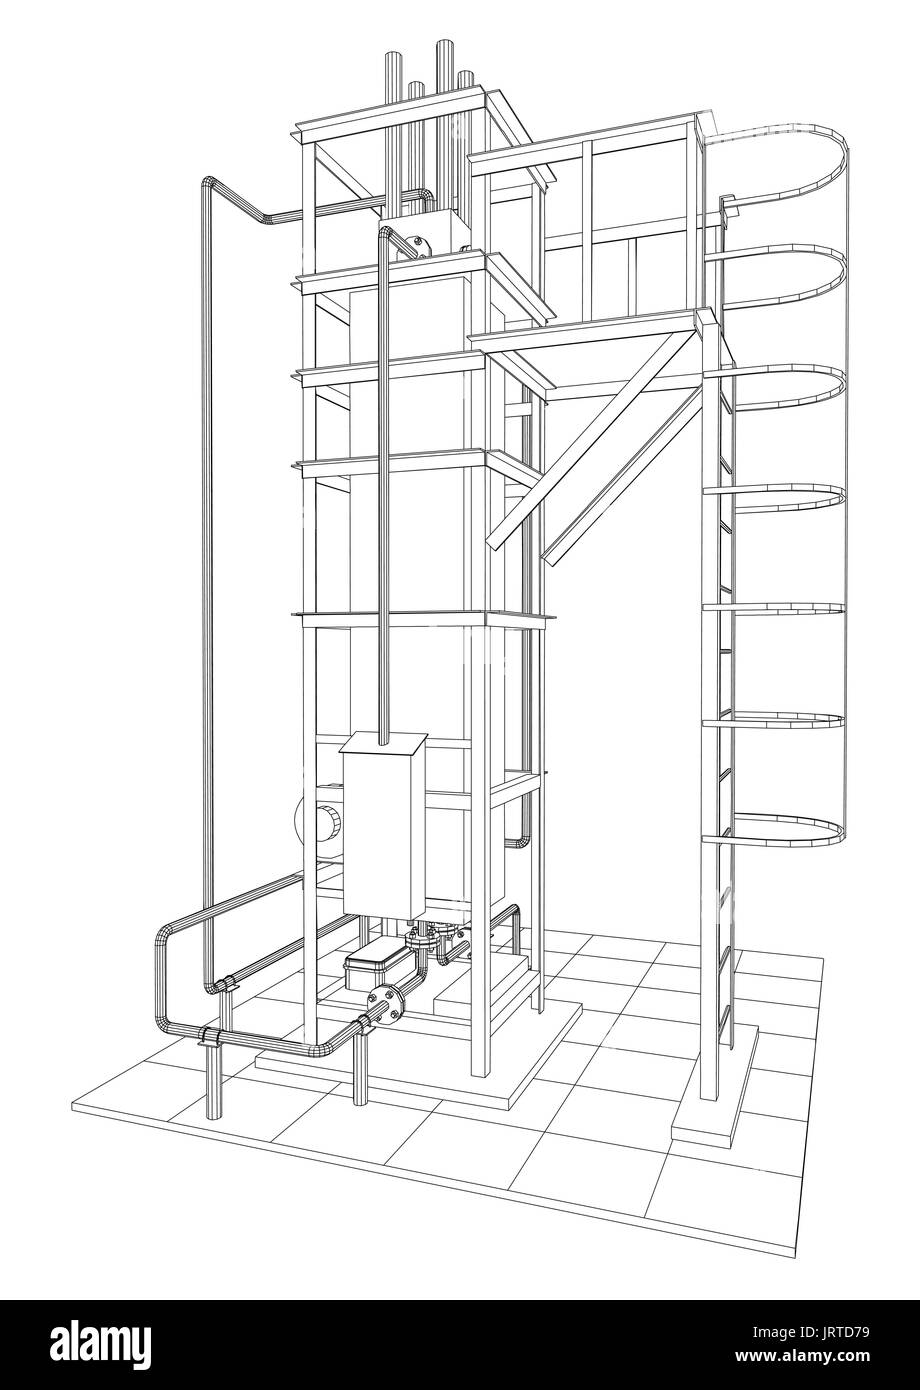 Residential Furnace Diagram Trusted Wiring Residencial Petroleum Gas Heating Tracing Illustration Of 3d Stock